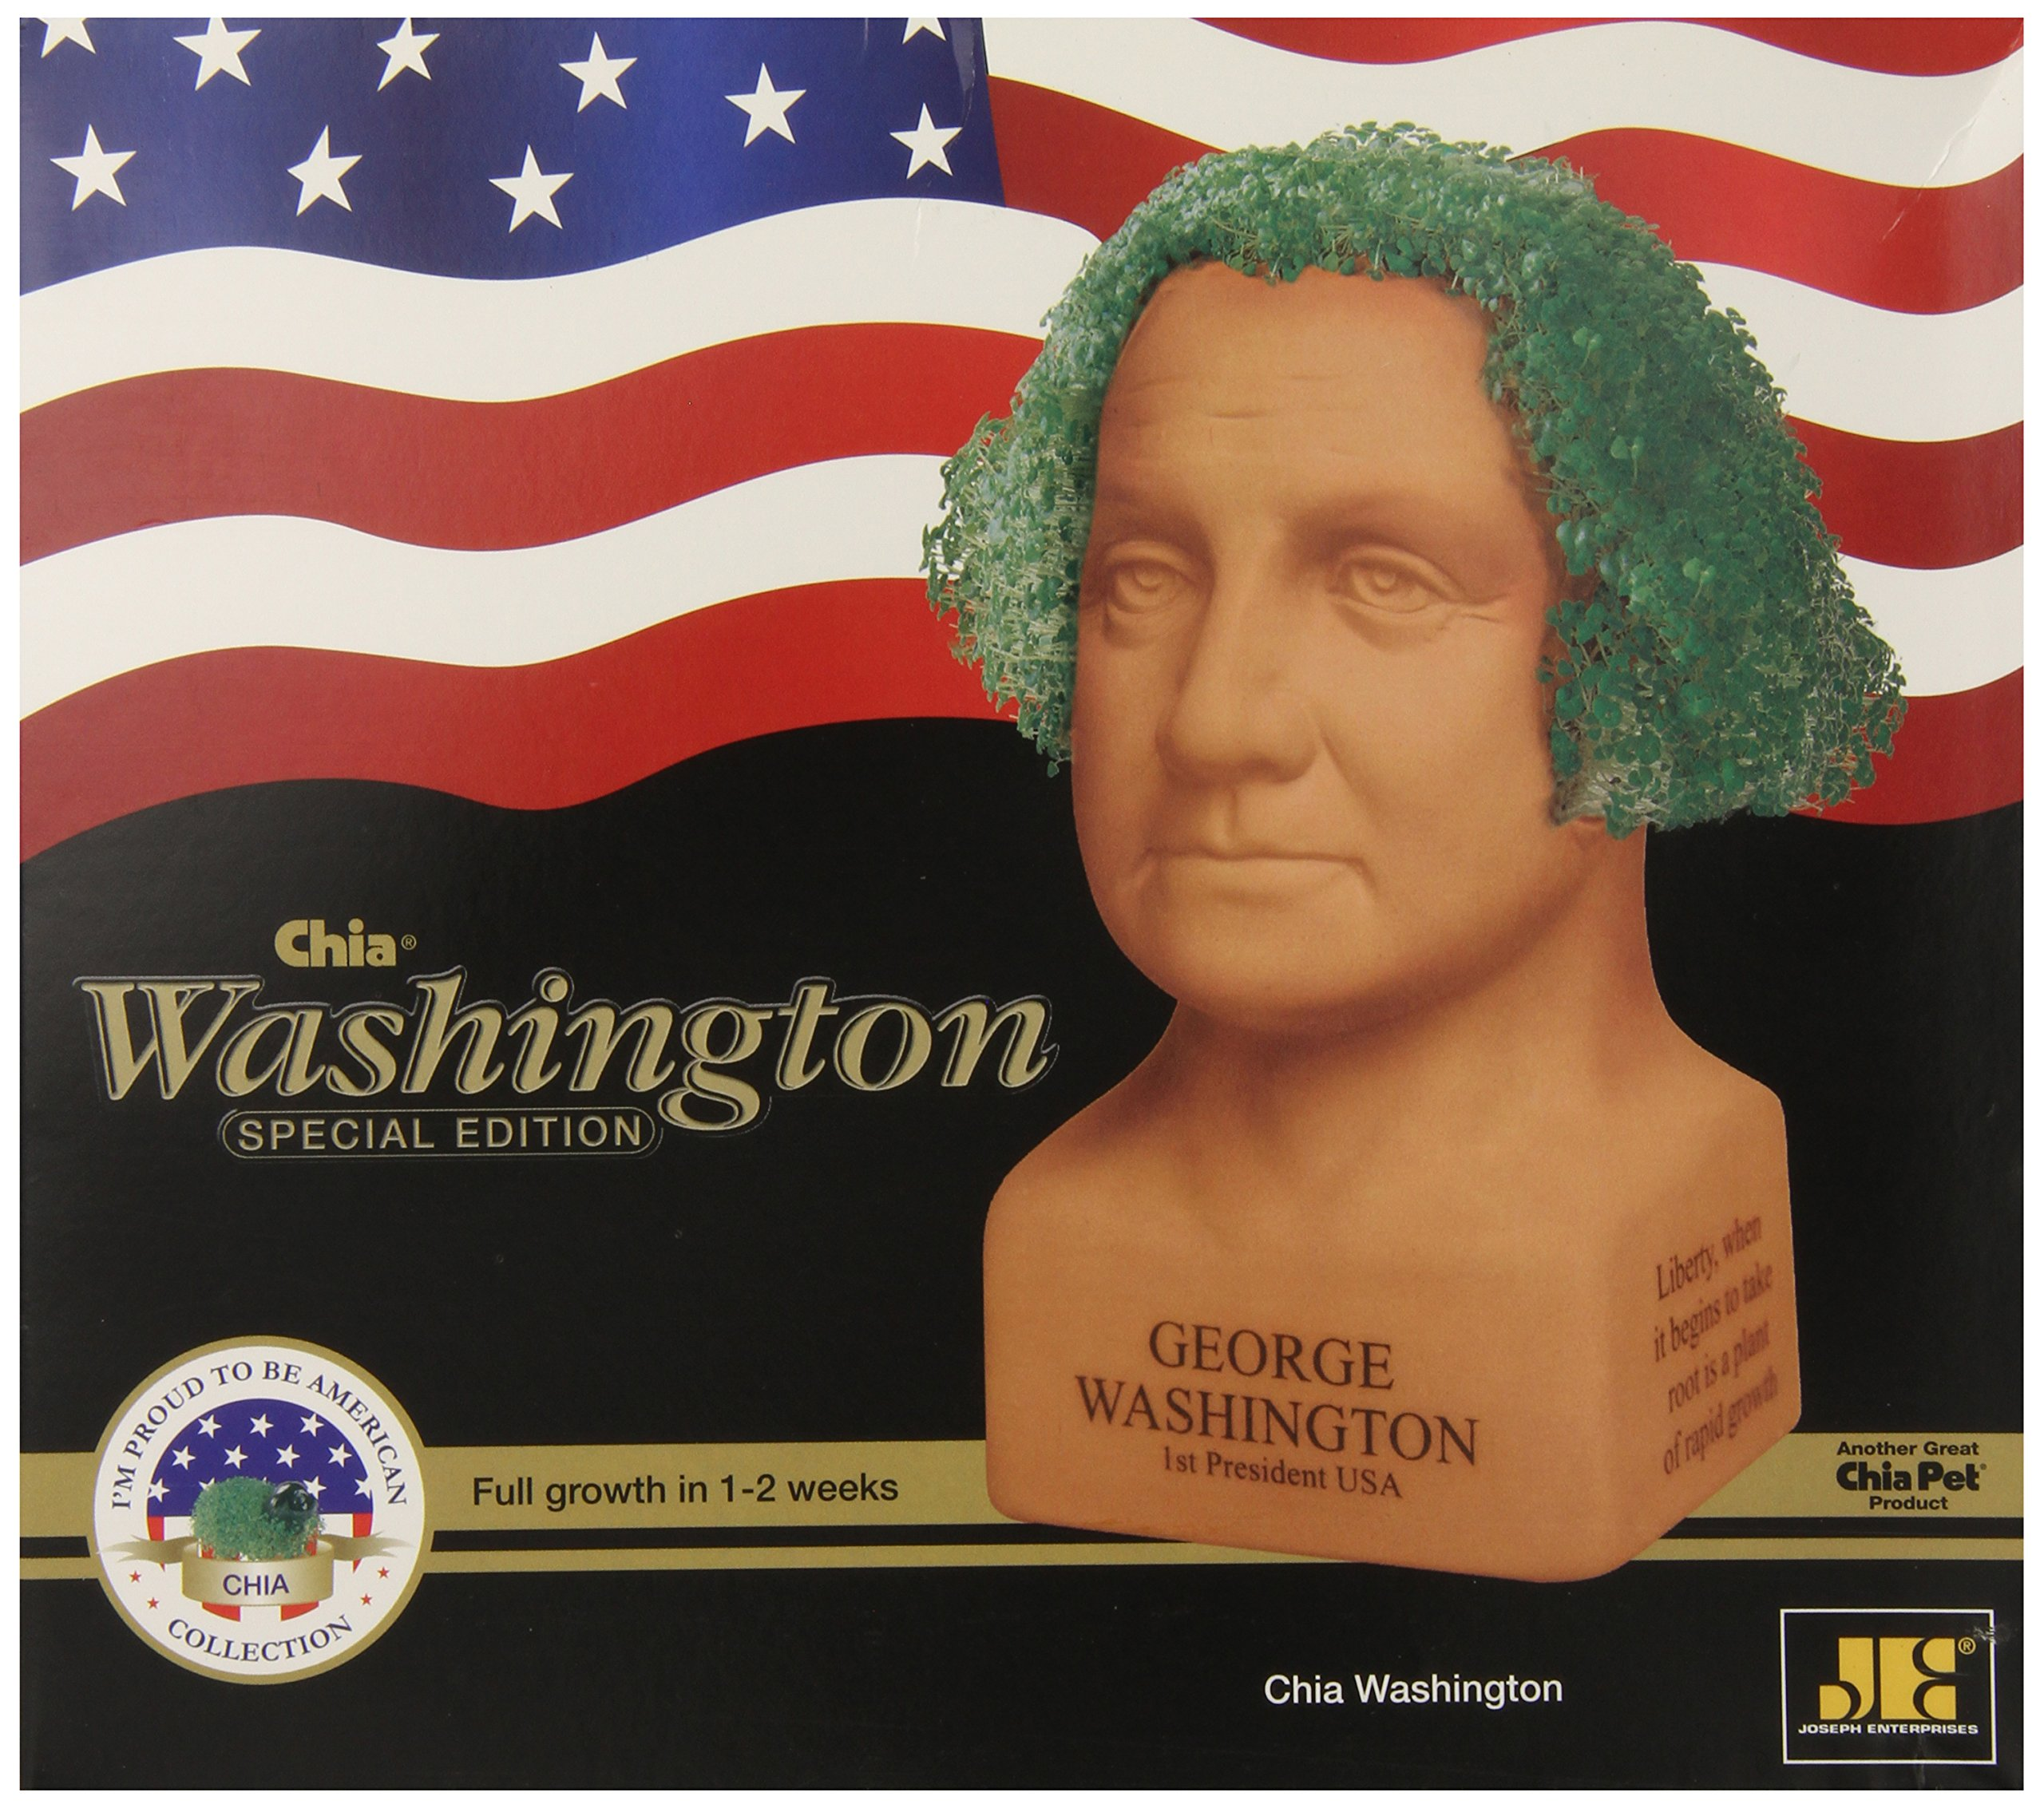 Chia Pet George Washington, Decorative Pottery Planter, Freedom of Choice, Easy To Do and Fun To Grow, Novelty Gift, Perfect For Any Occasion